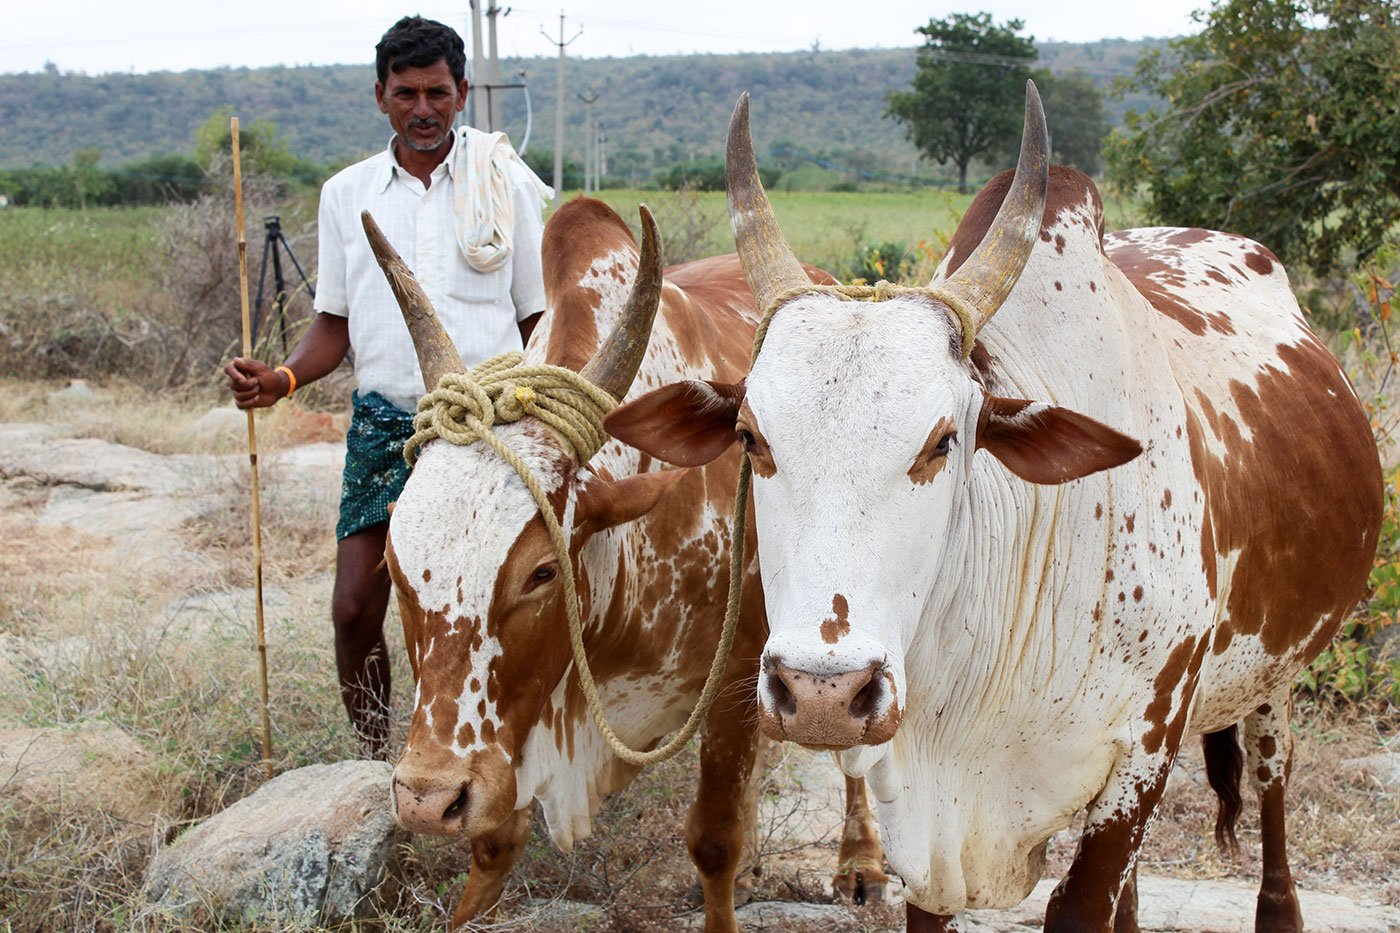 Man with his cattle